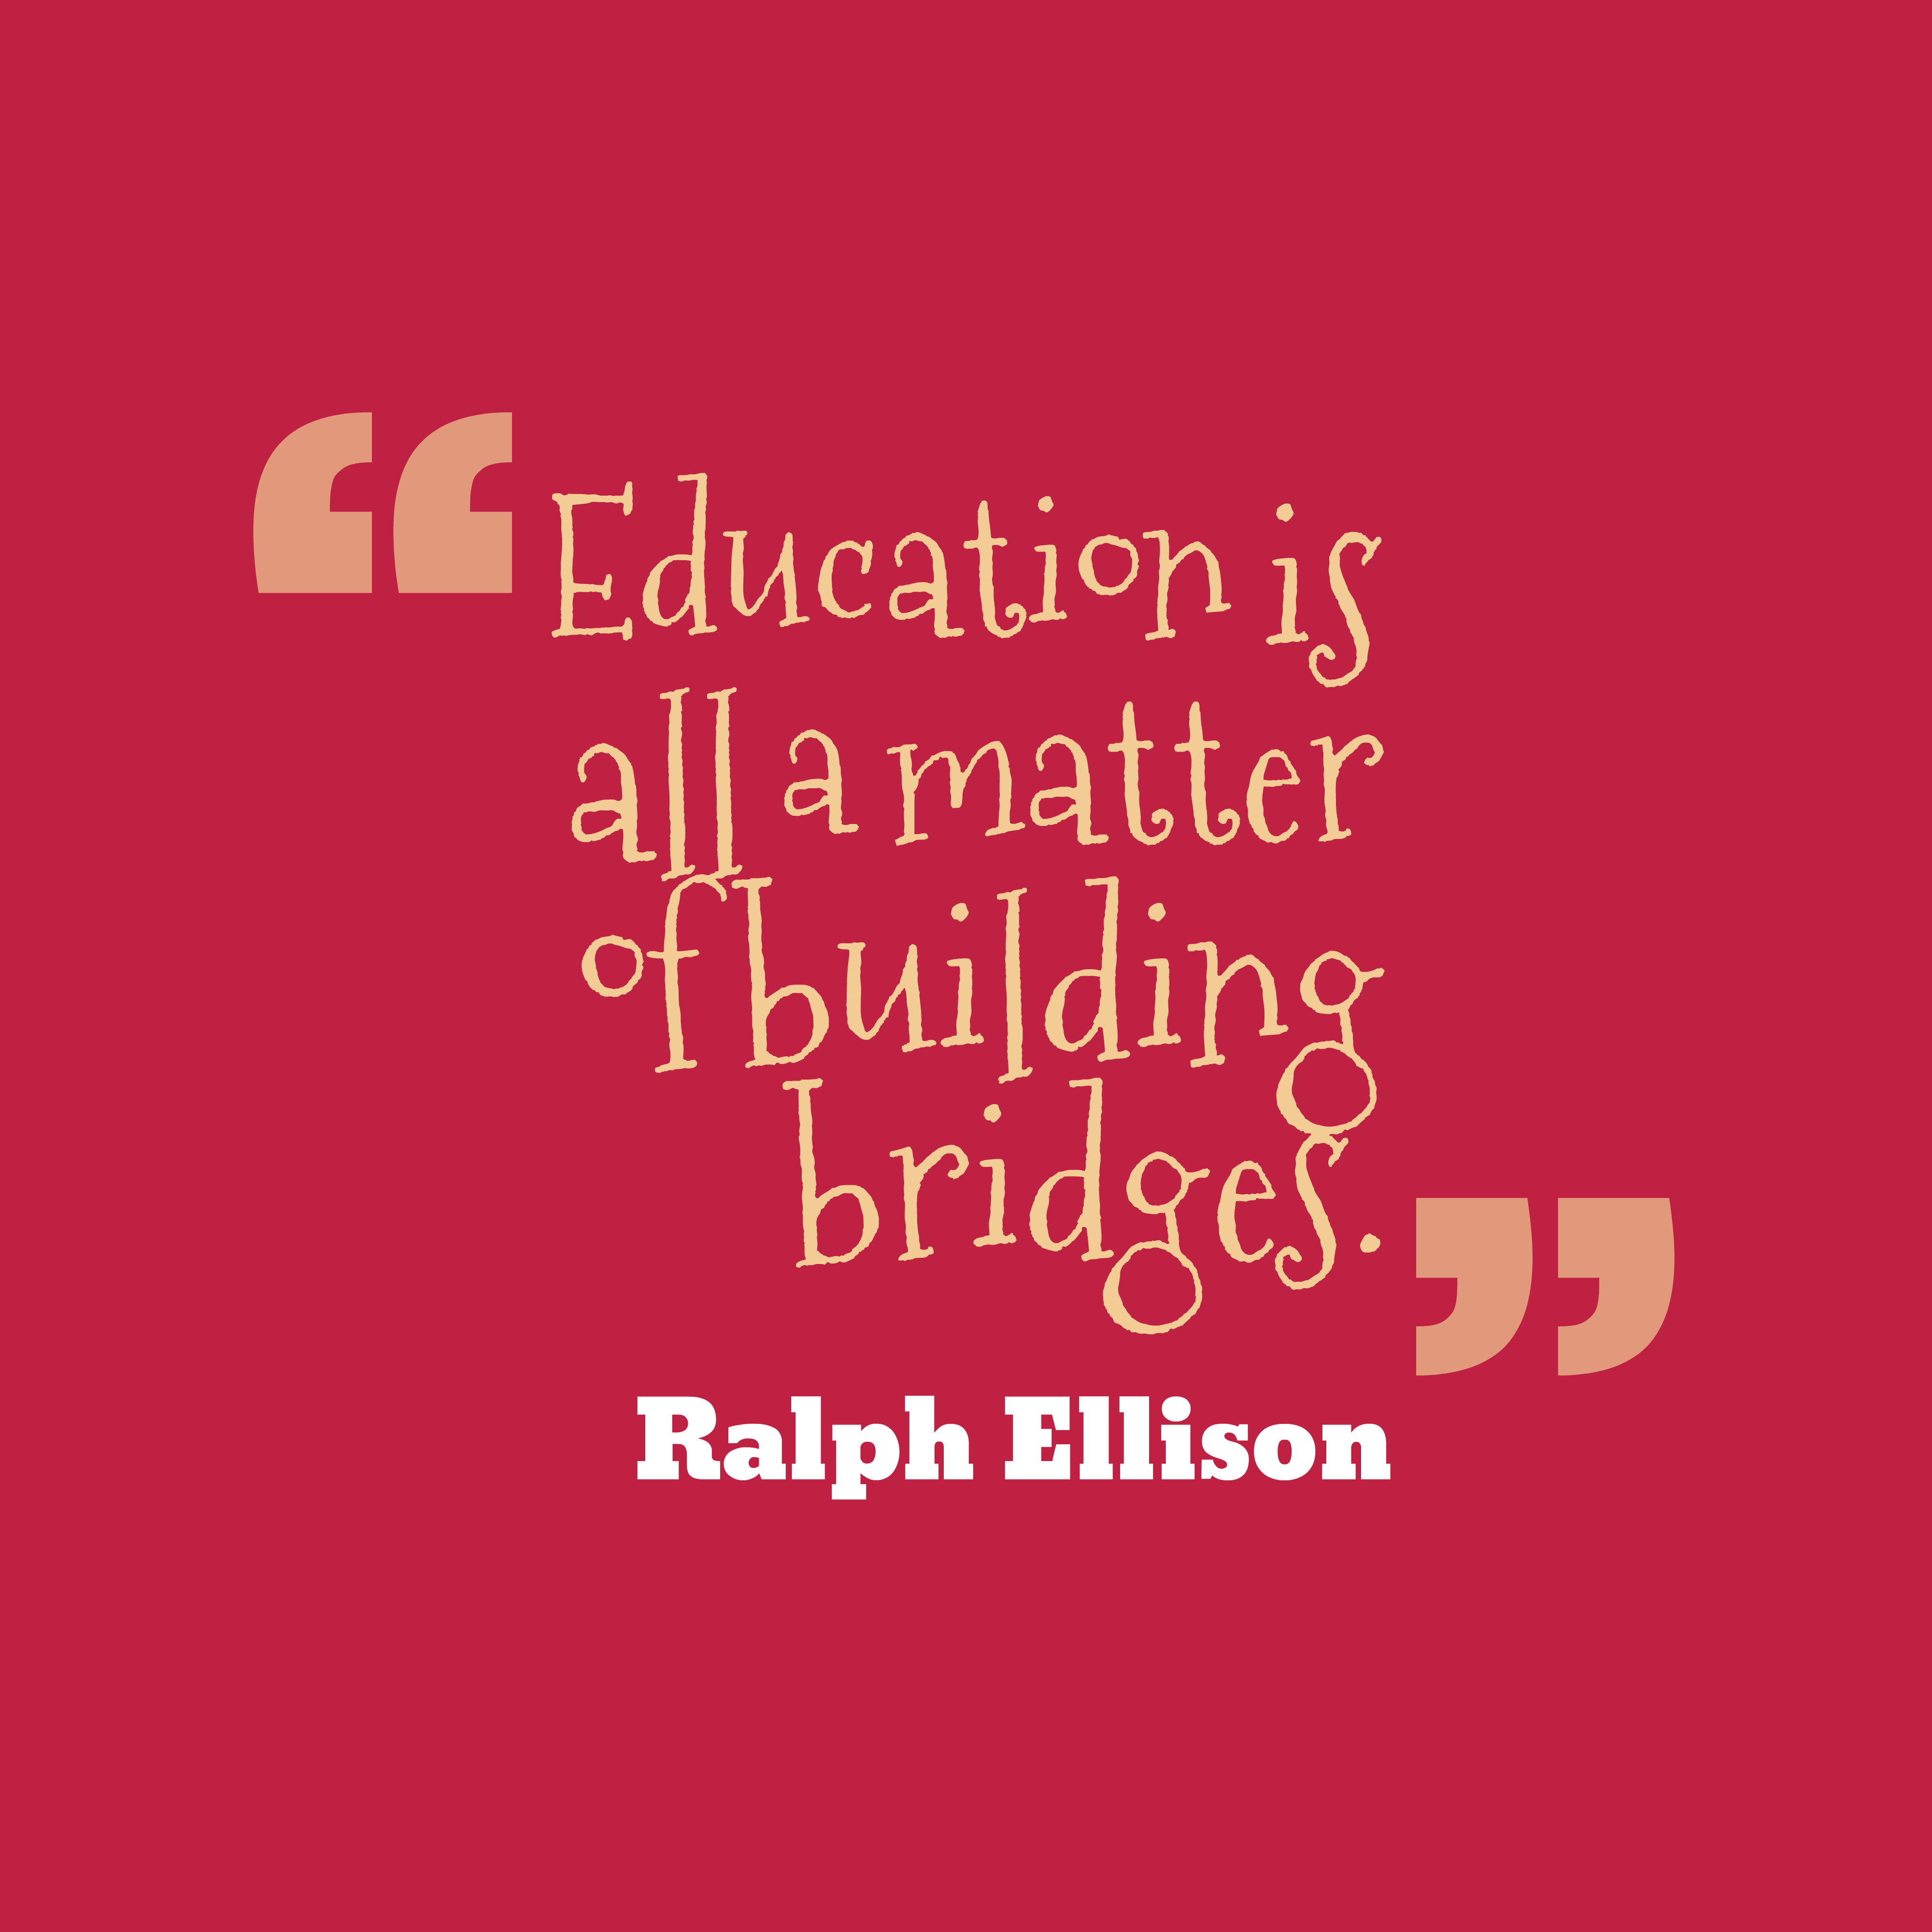 Education is all a matter quotes by Ralph Ellison 85